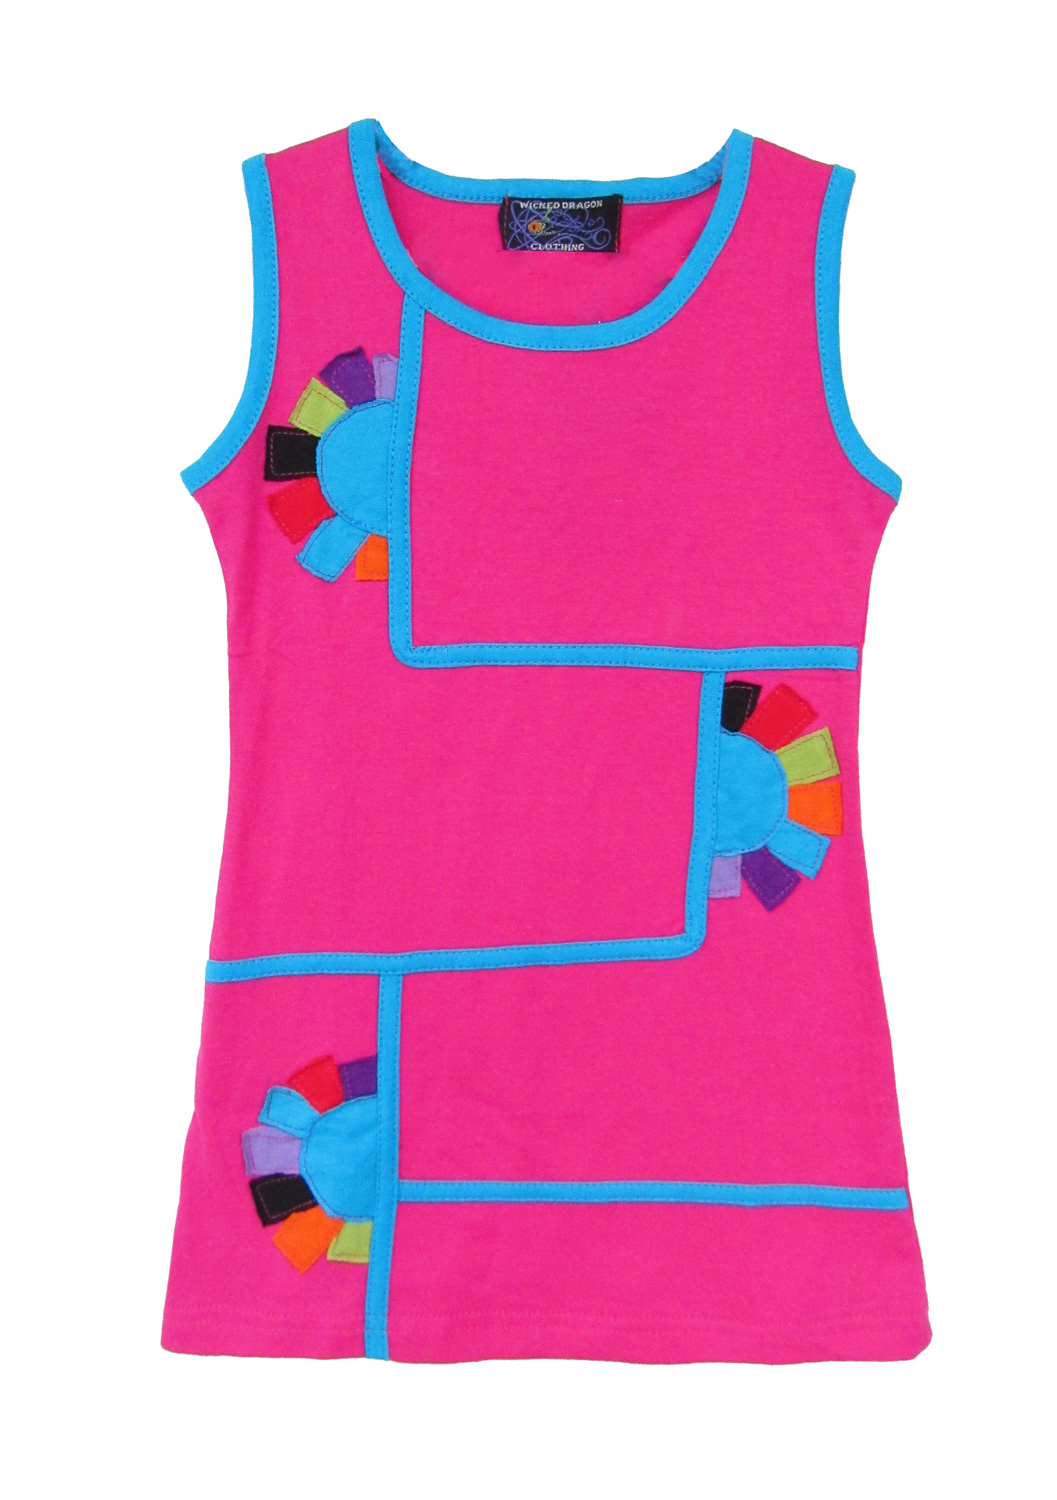 Children sleeveless dress